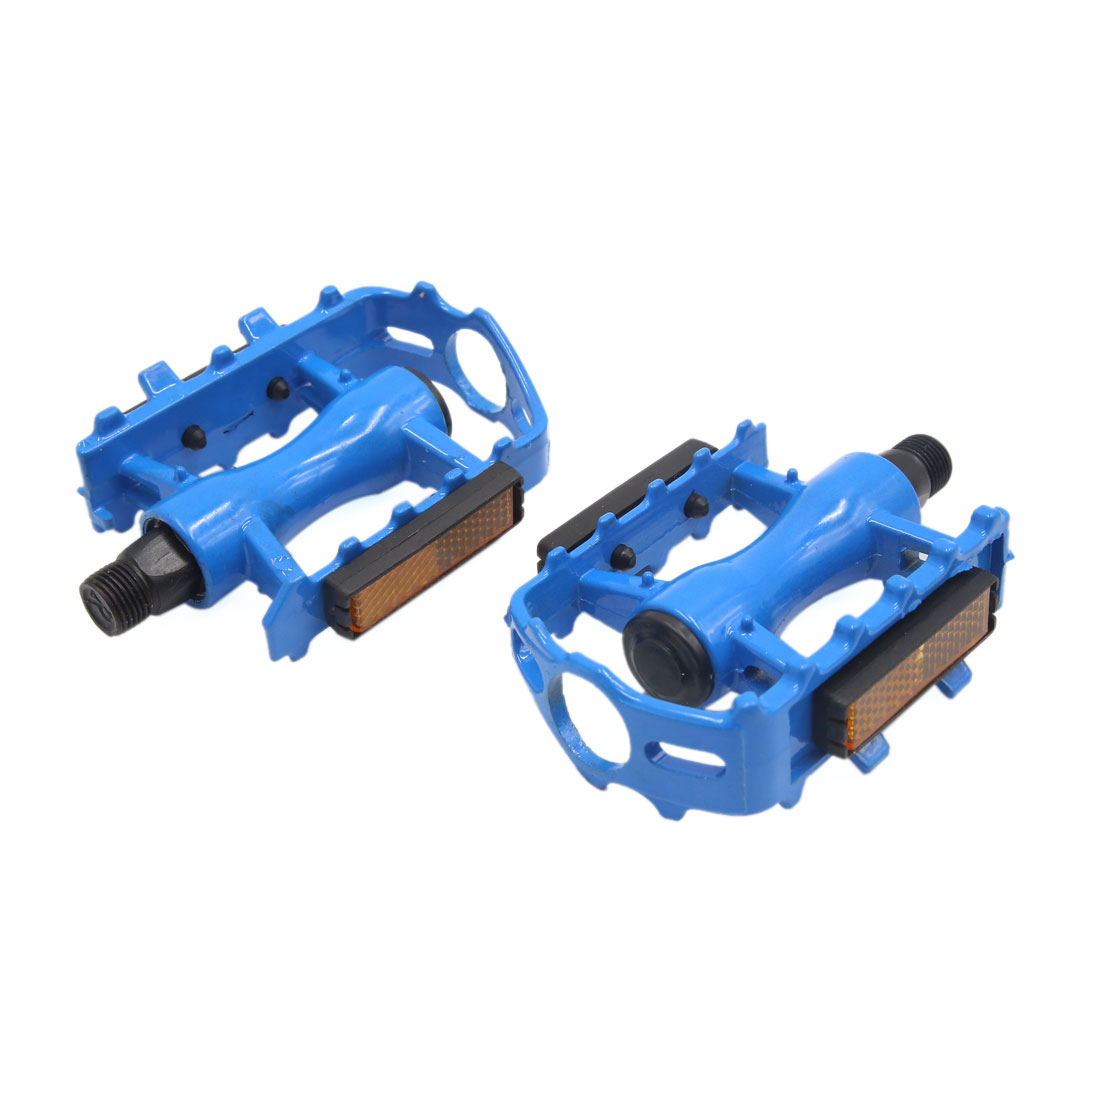 2 Pcs Blue Aluminum Alloy Anti Slip Axle Platform Pedals for Bike Bicycle Cycling